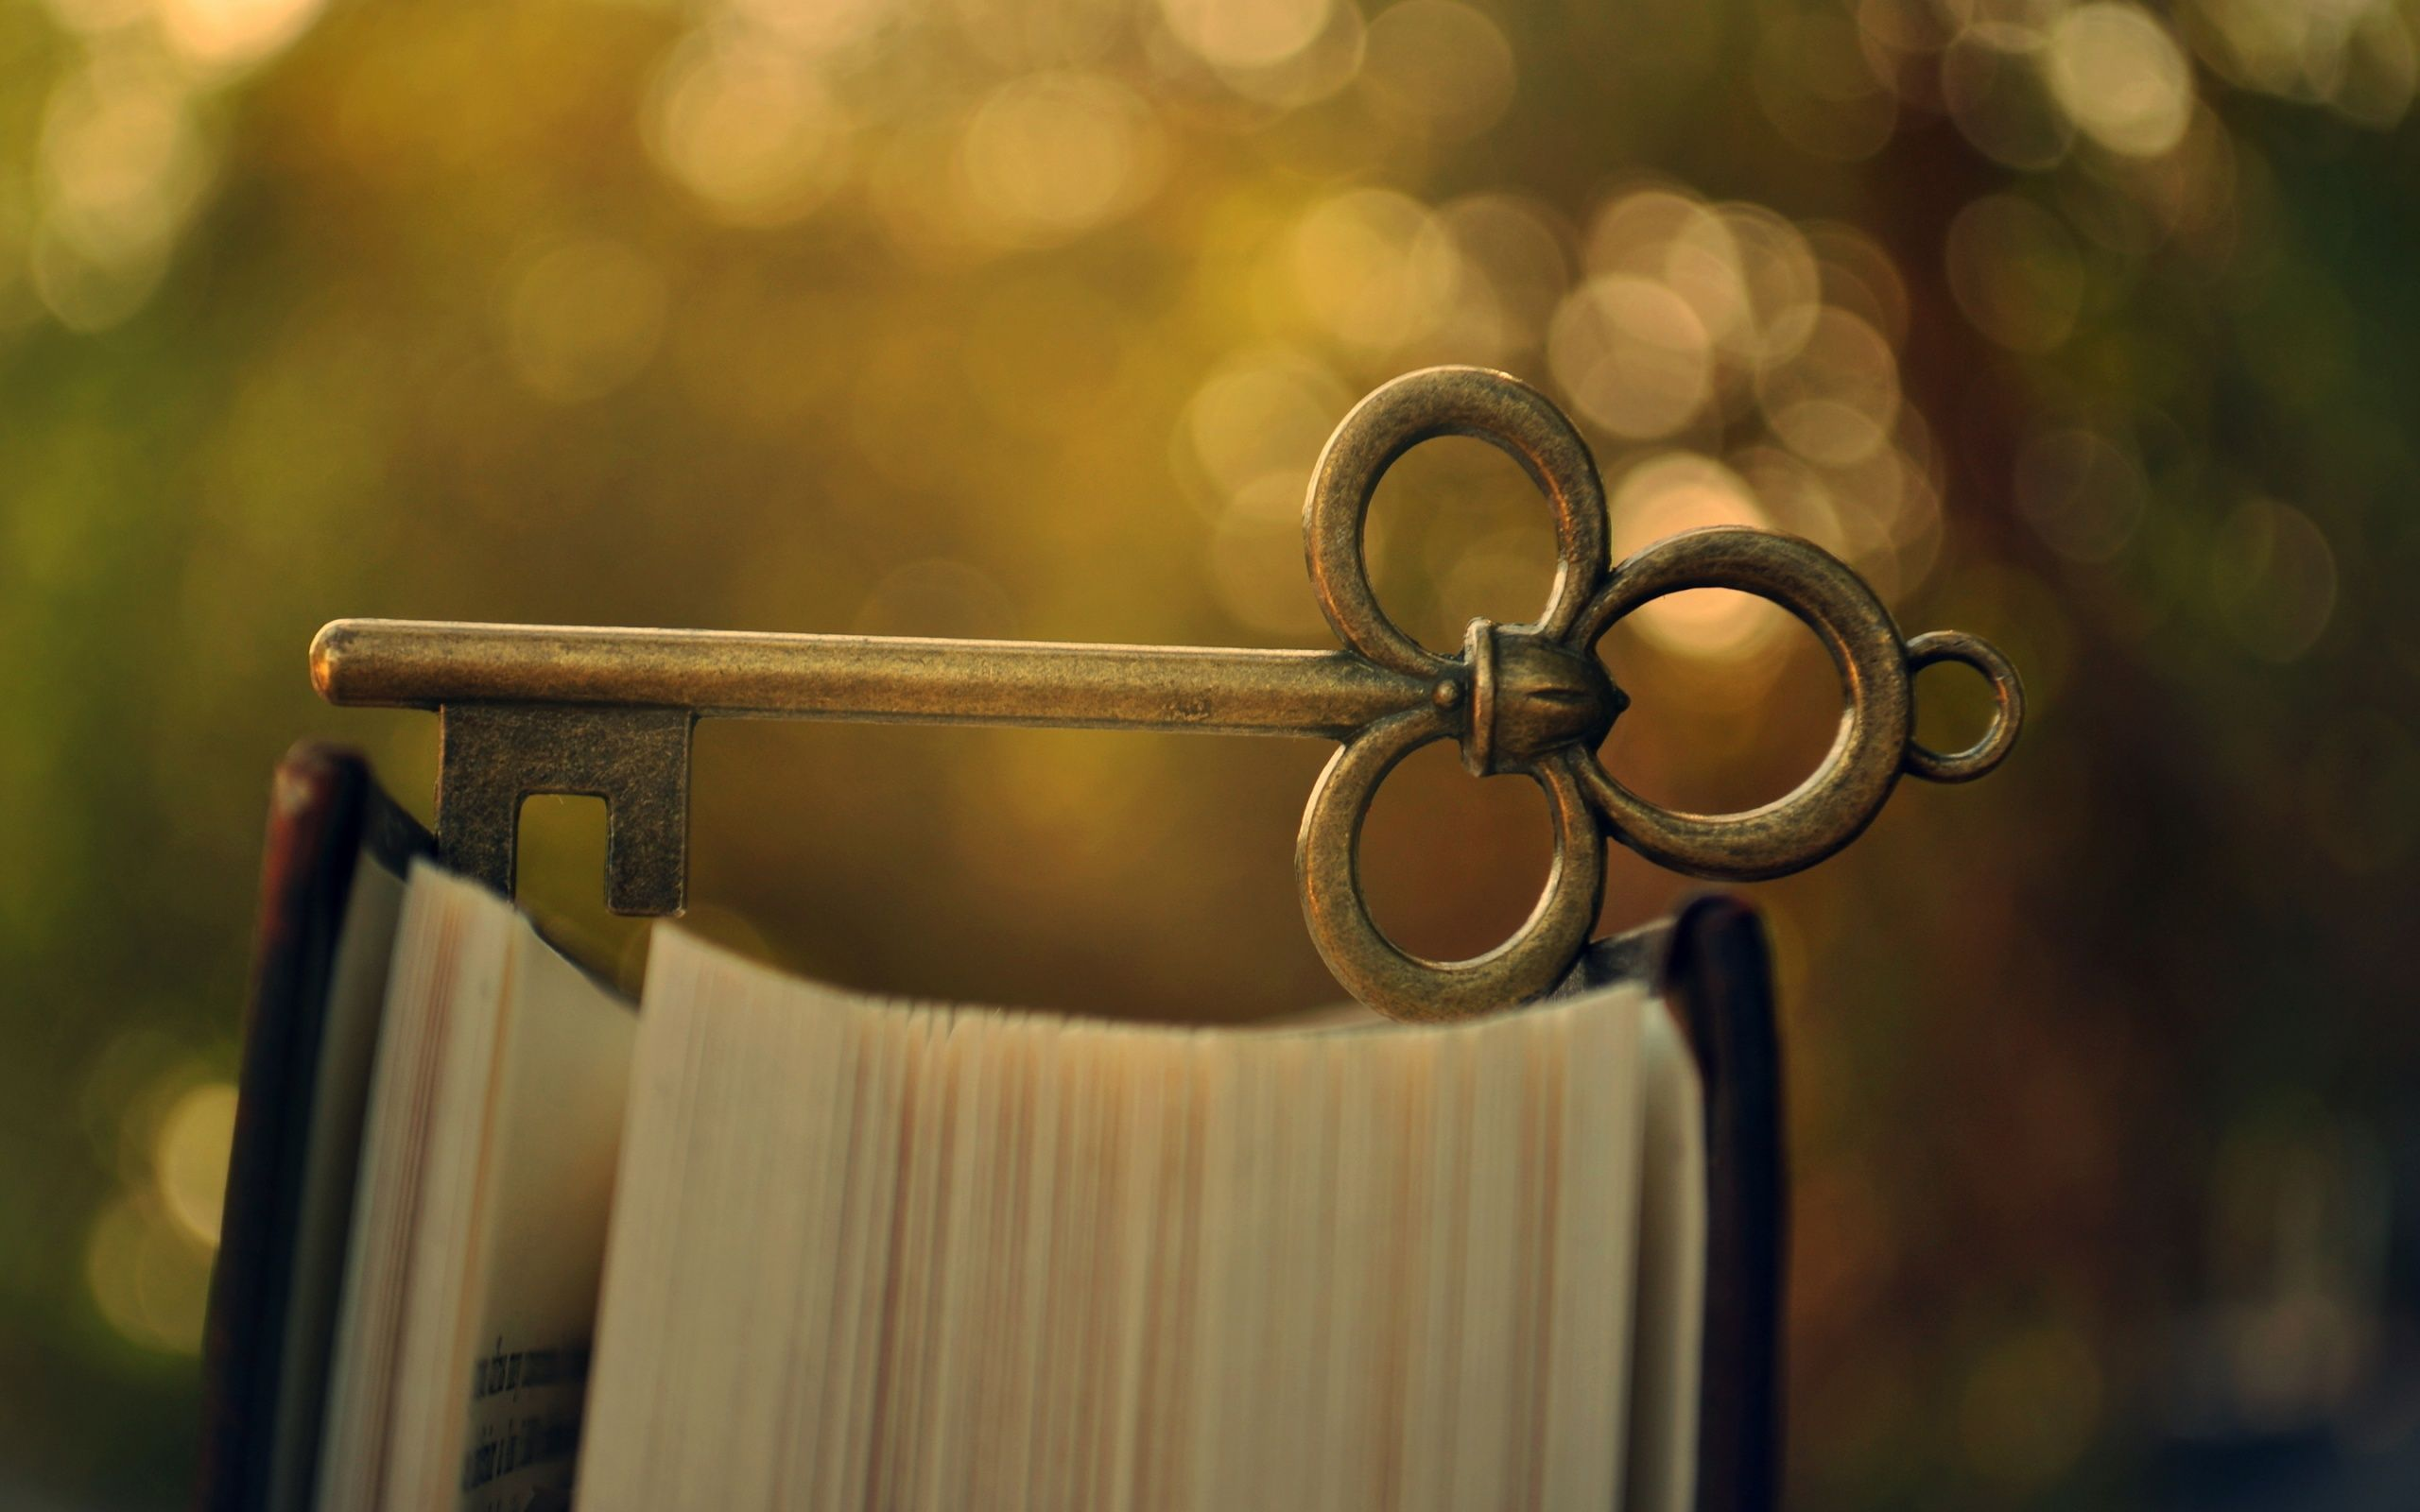 Pin About Book Background Hd Wallpaper Vintage And Book